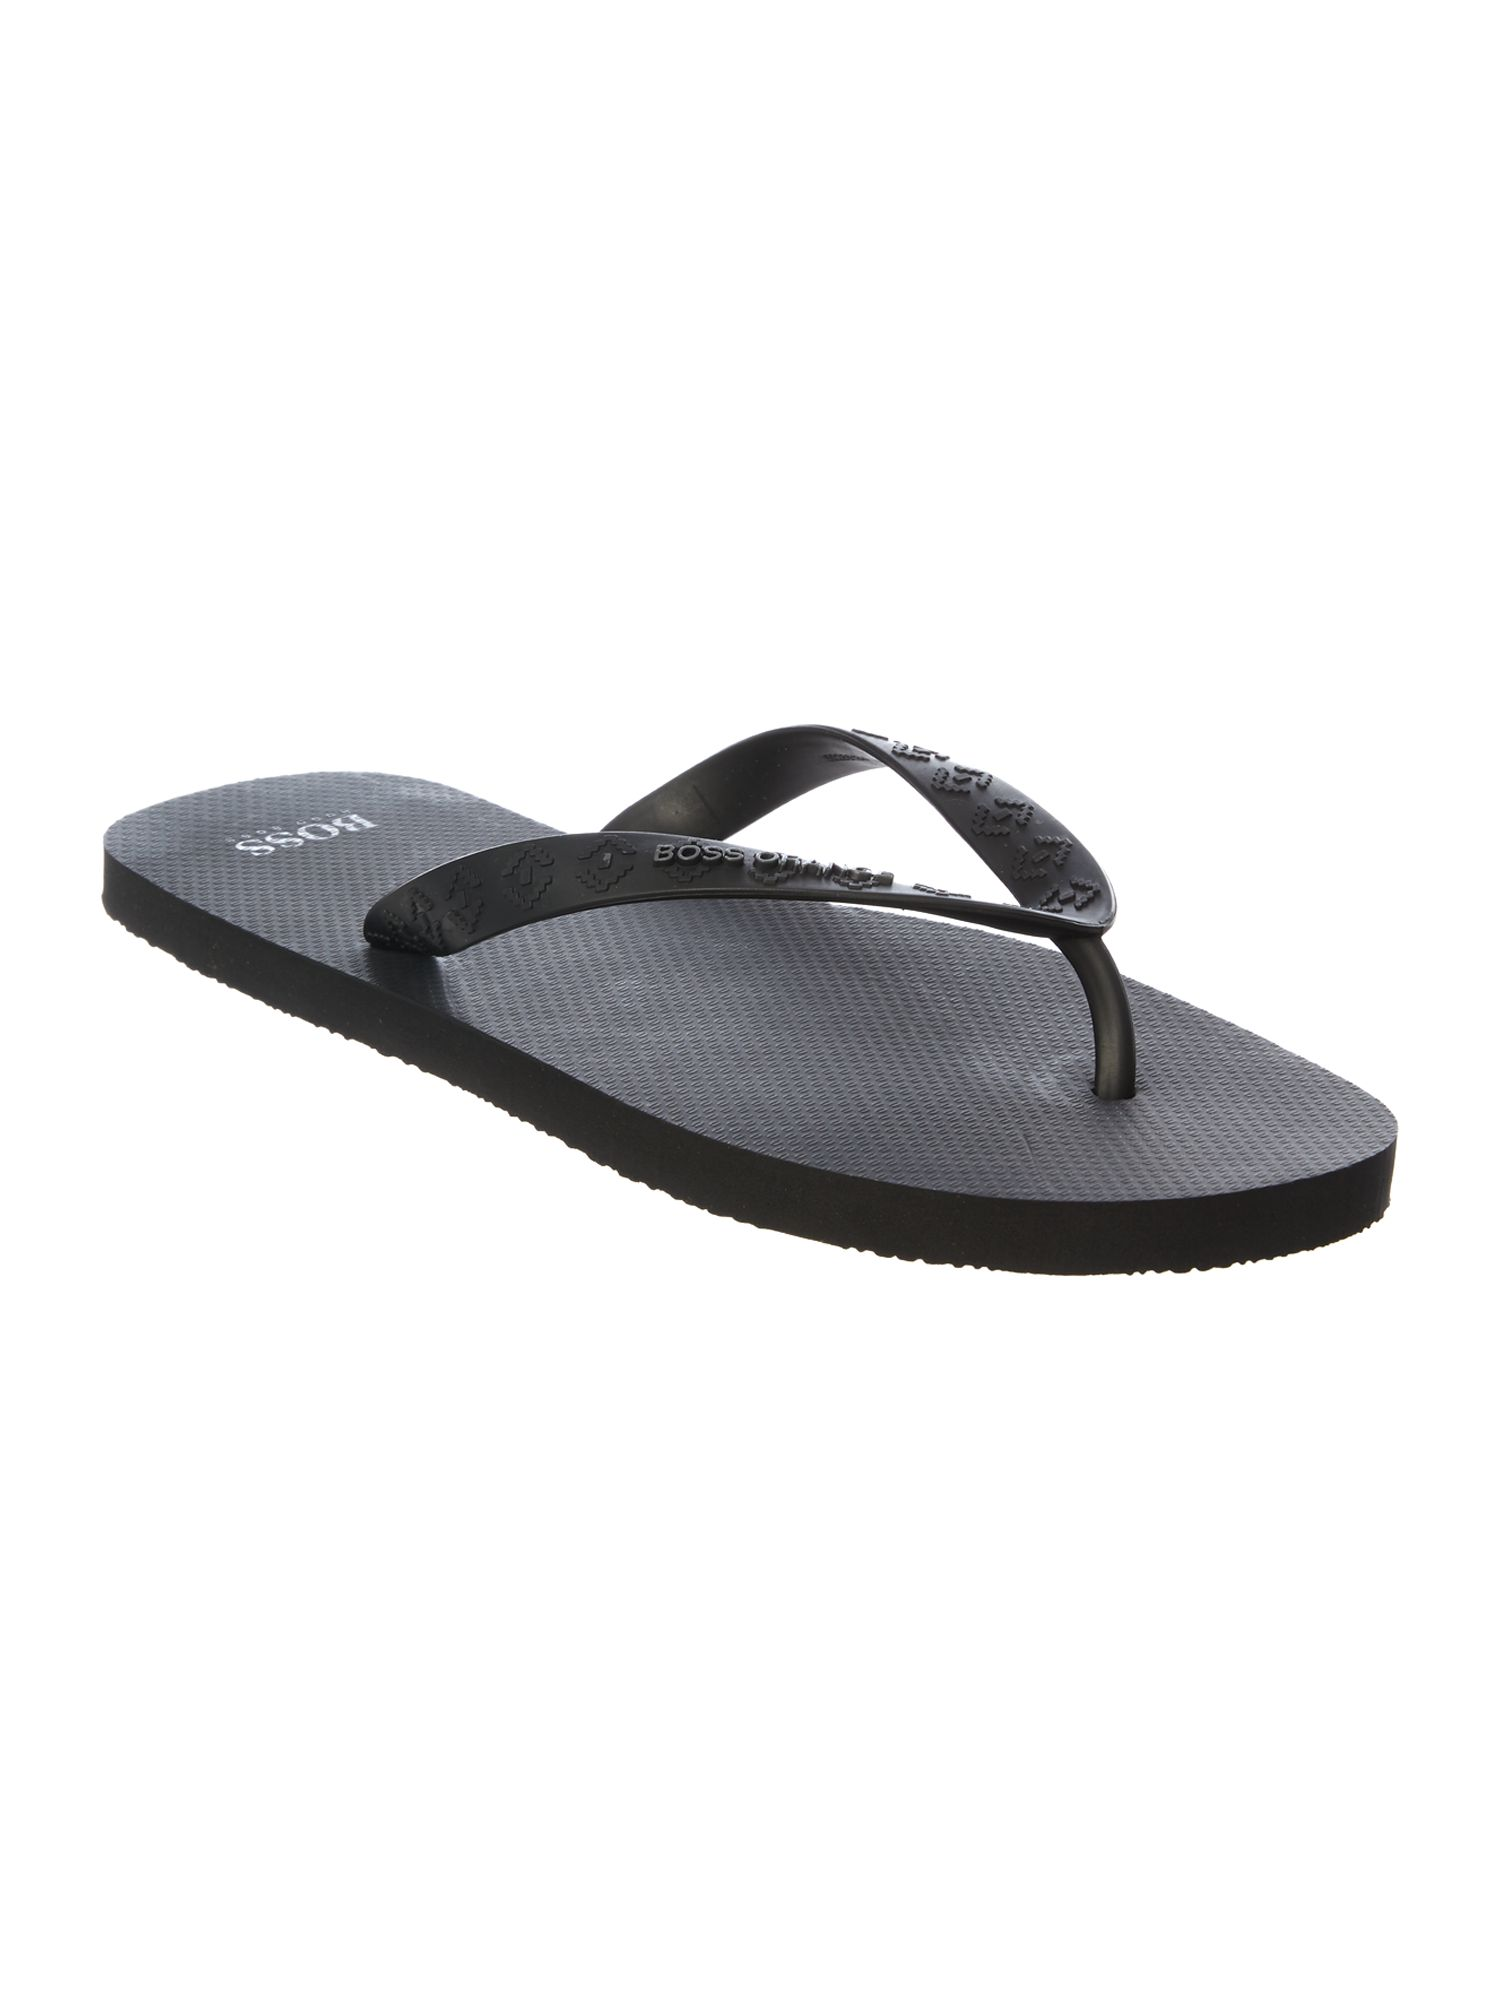 Men's Hugo Boss Logo Flip Flop, Black